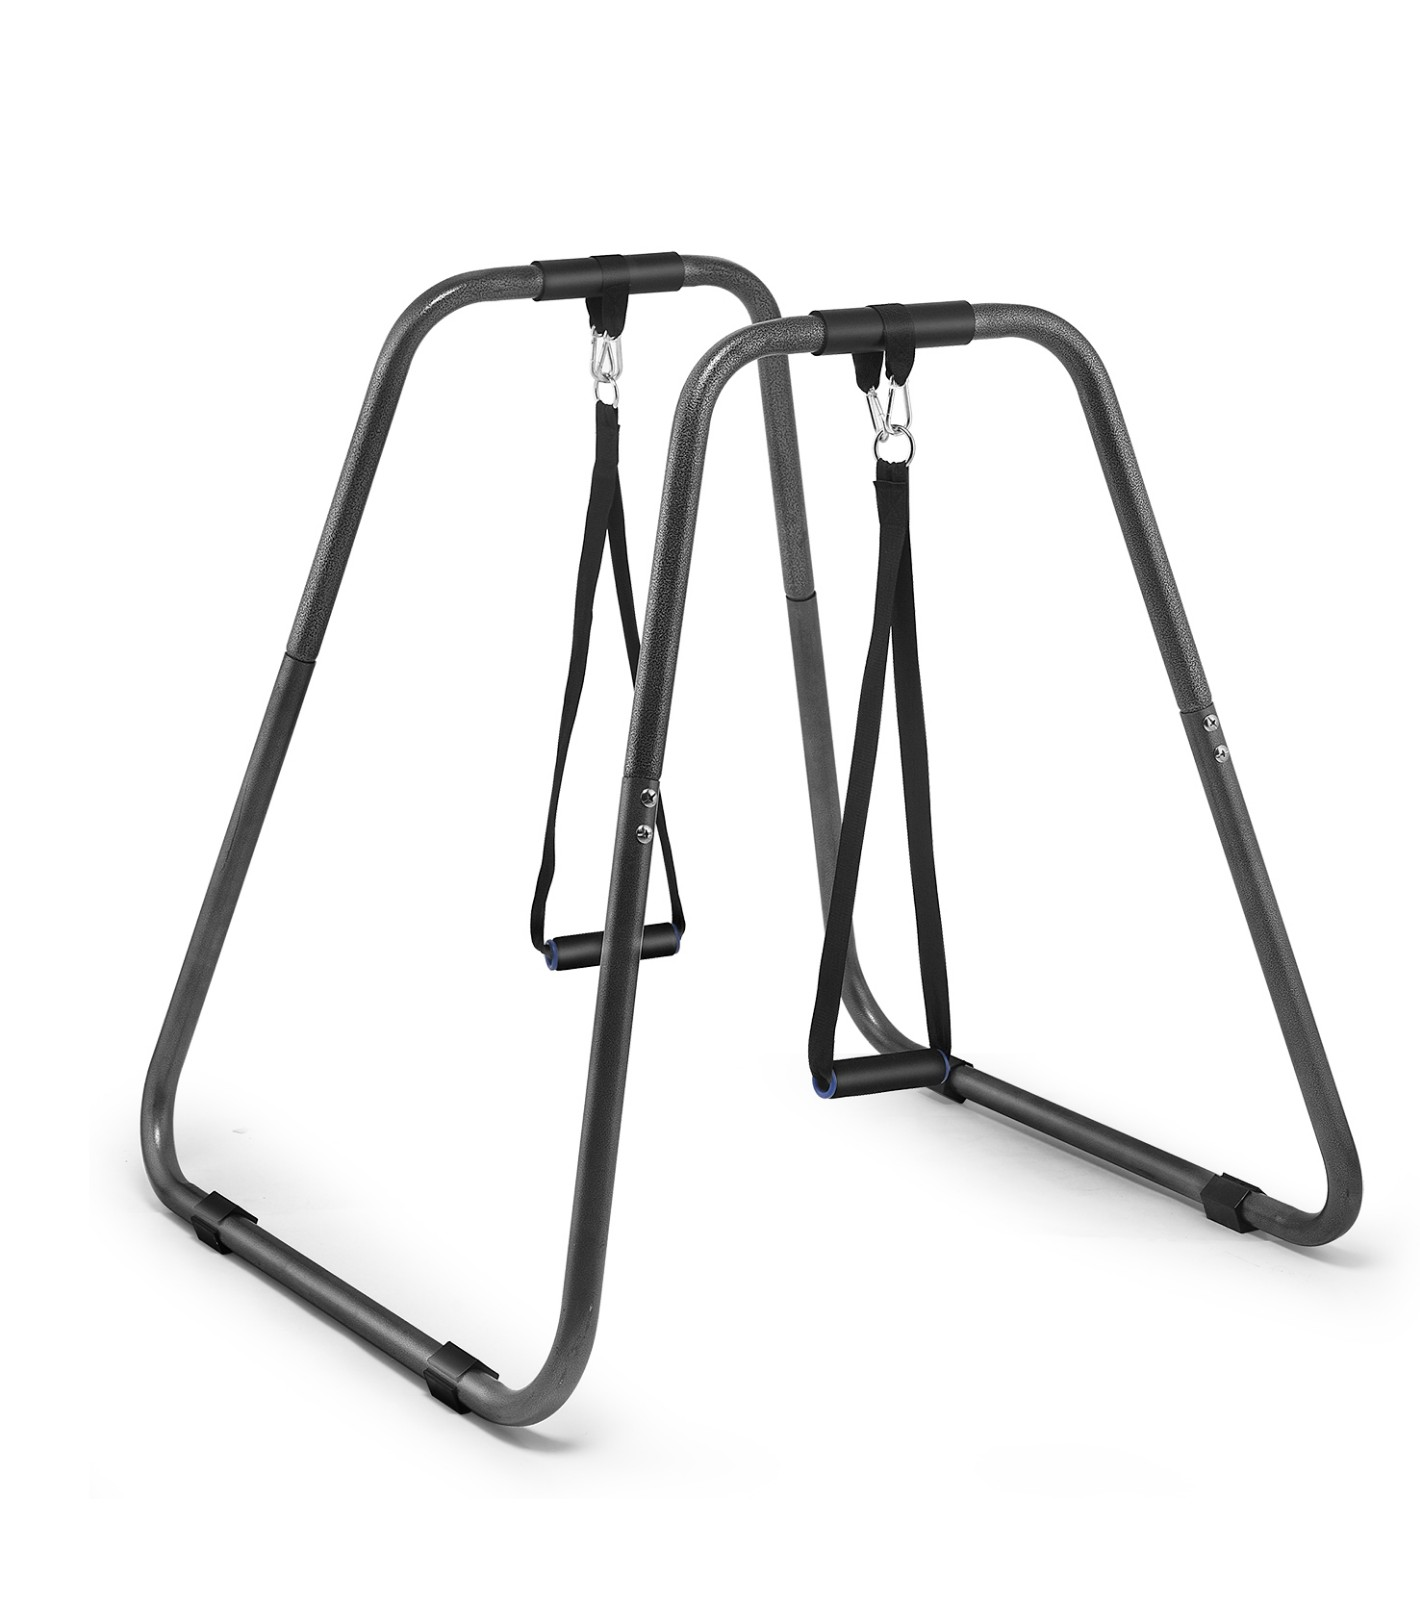 Dipping Station Fitness Strength Training Exercise Dip Bar Slings Loops